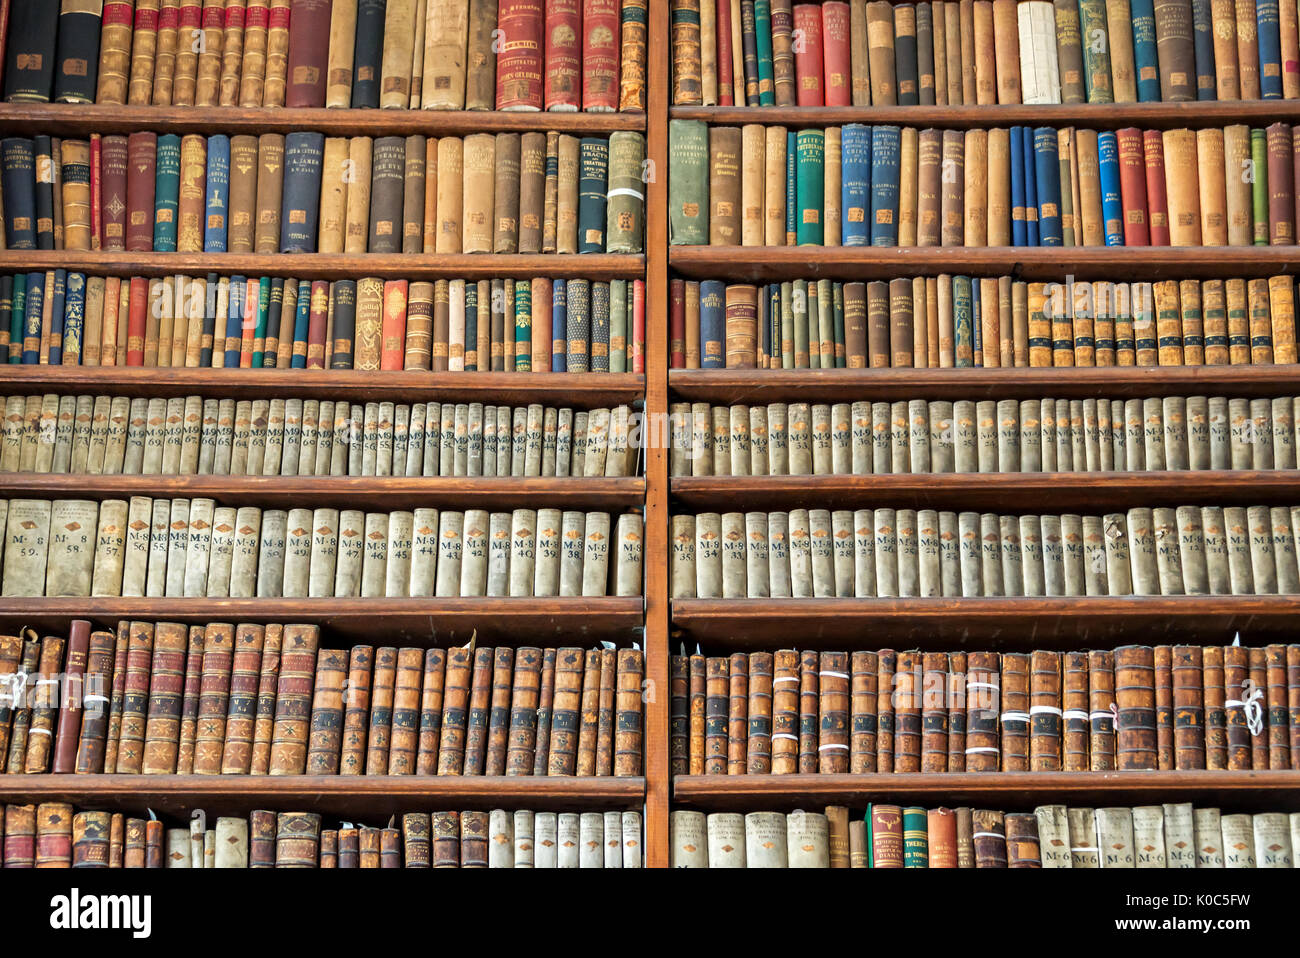 Background Of Old Vintage Books On Wooden Bookshelf In A